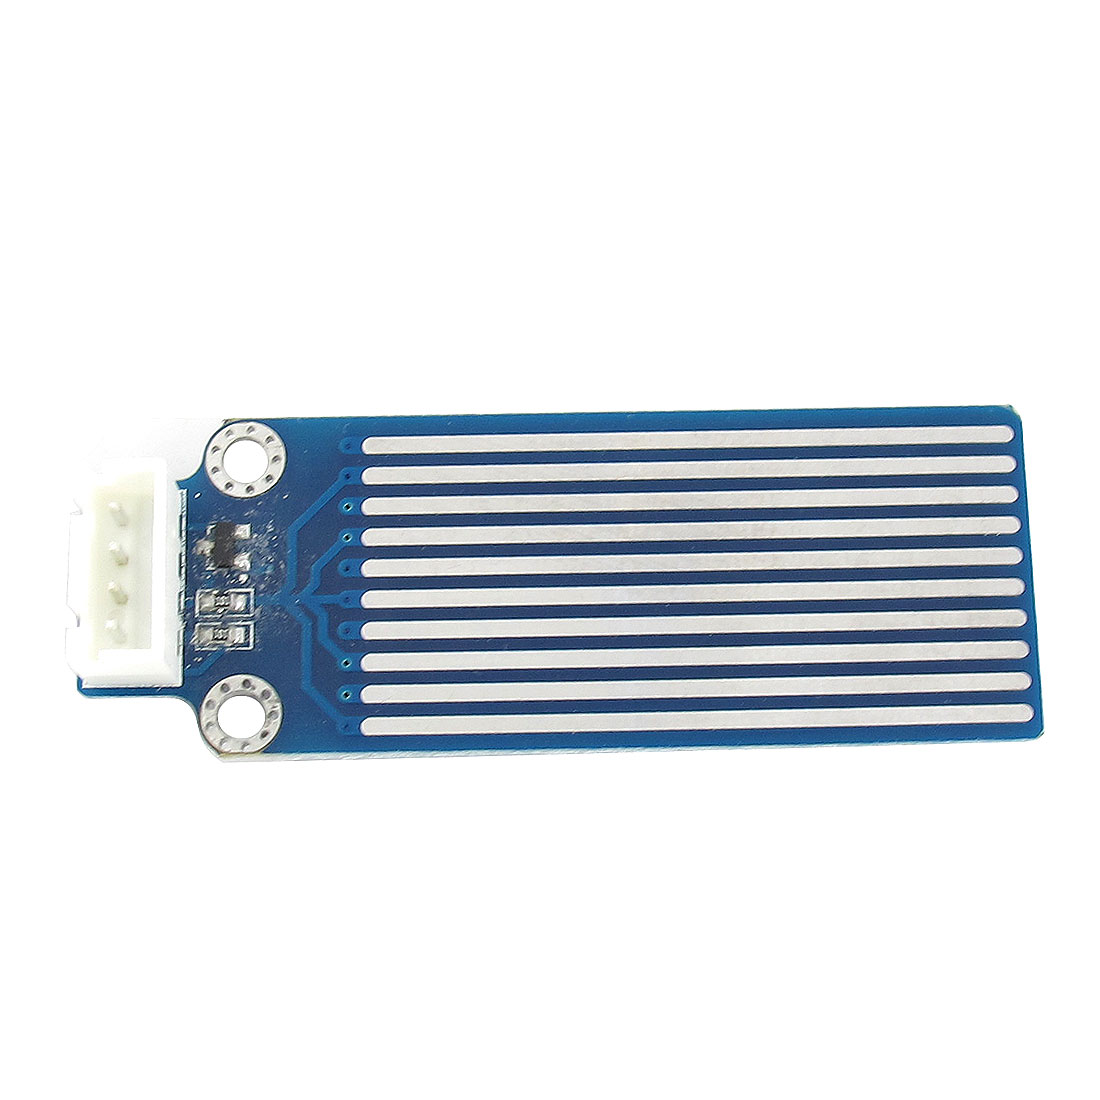 DC3.3V-5V 4-Pin JST-XH Male Raindrop Water Level Detection Sensor Weather Sensitive Module PCB Board 60mm x 22mm